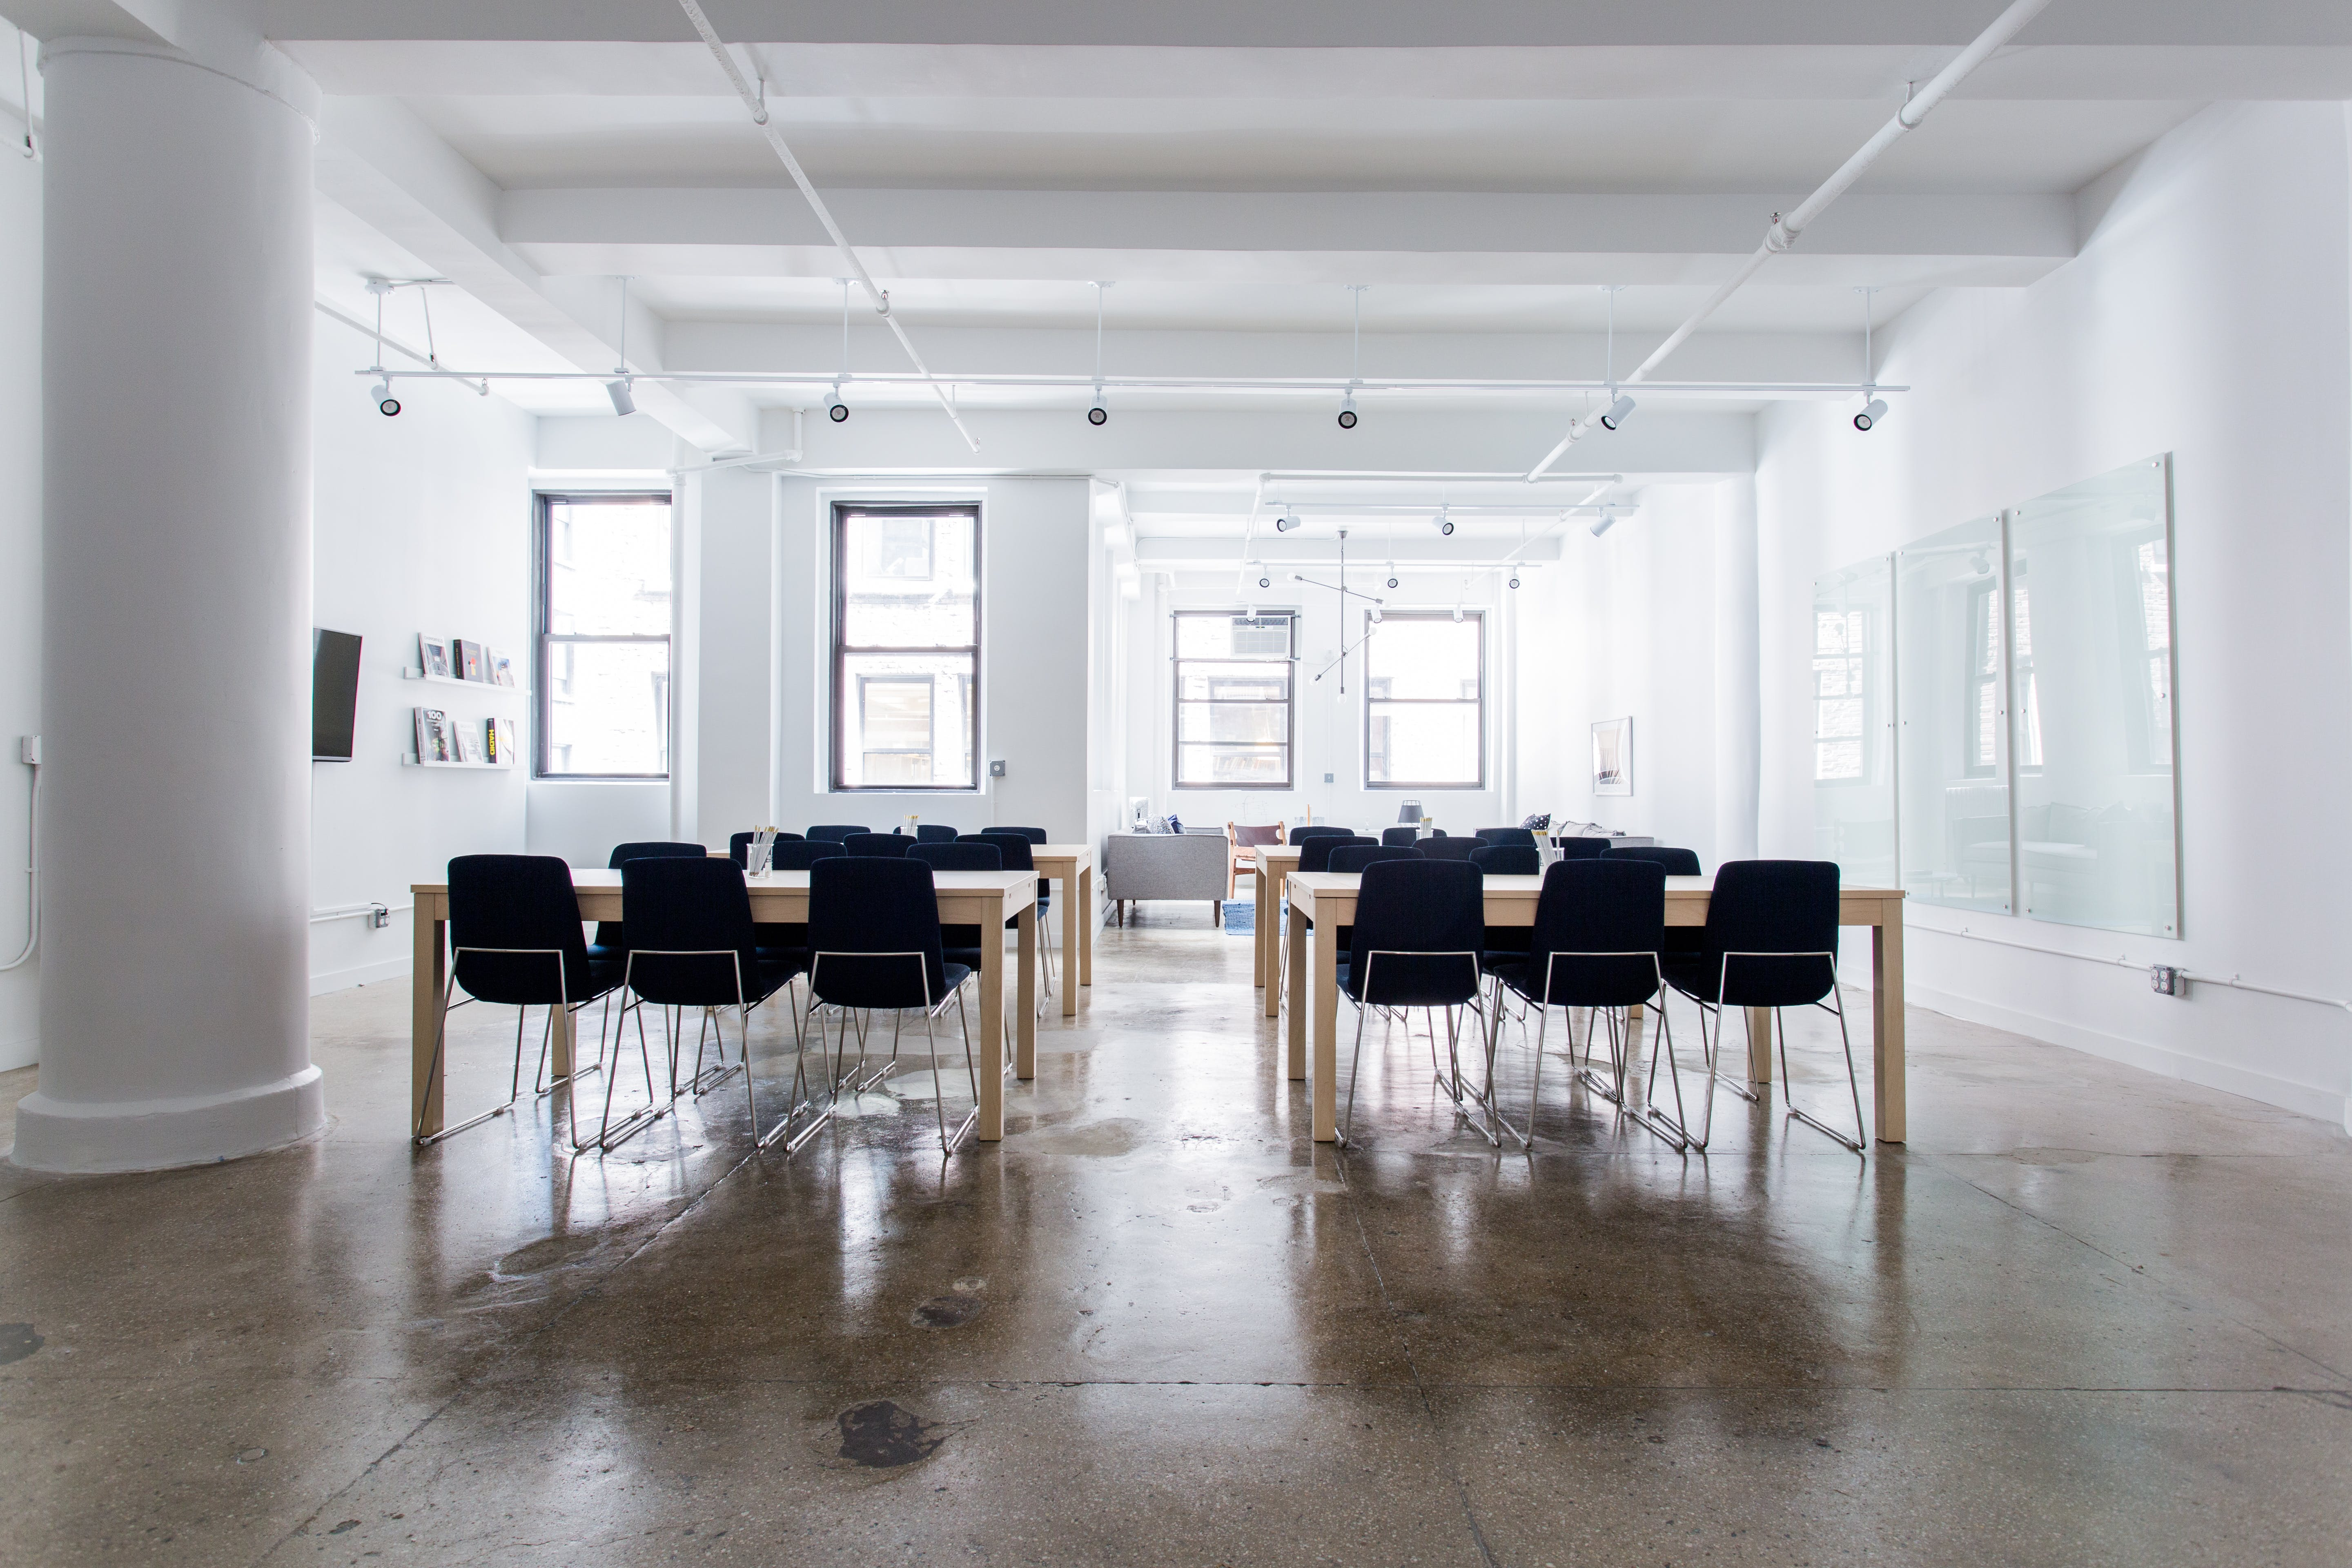 launch_event space at 153 West 27th Street